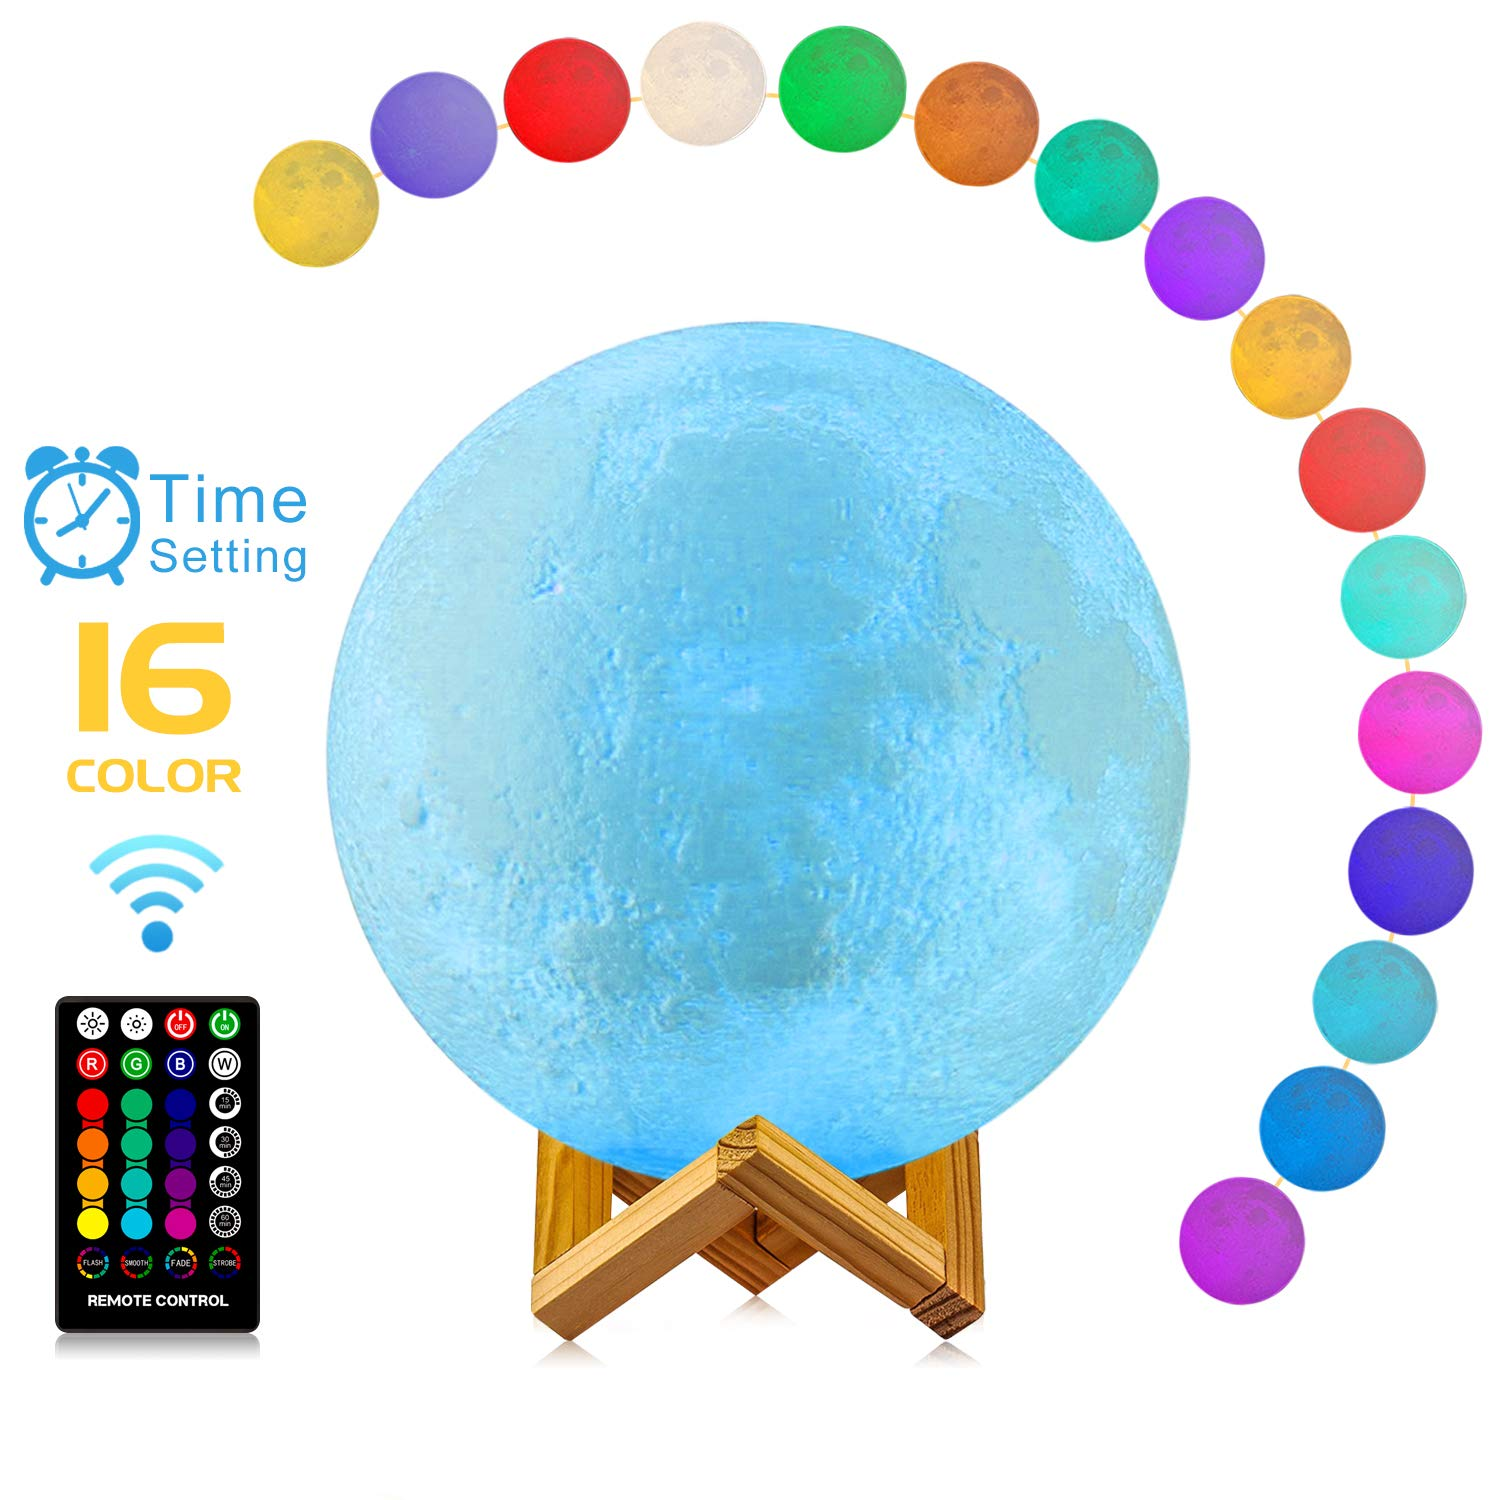 Moon Lamp, LOGROTATE Moon Light Lamps with Time Setting and Stand 3D Print LED 16 Colors, Hung Up Decorative Night Lights for Baby Kids Friends Lover Birthday Gifts(Diameter 9.6 inch) by LOGROTATE